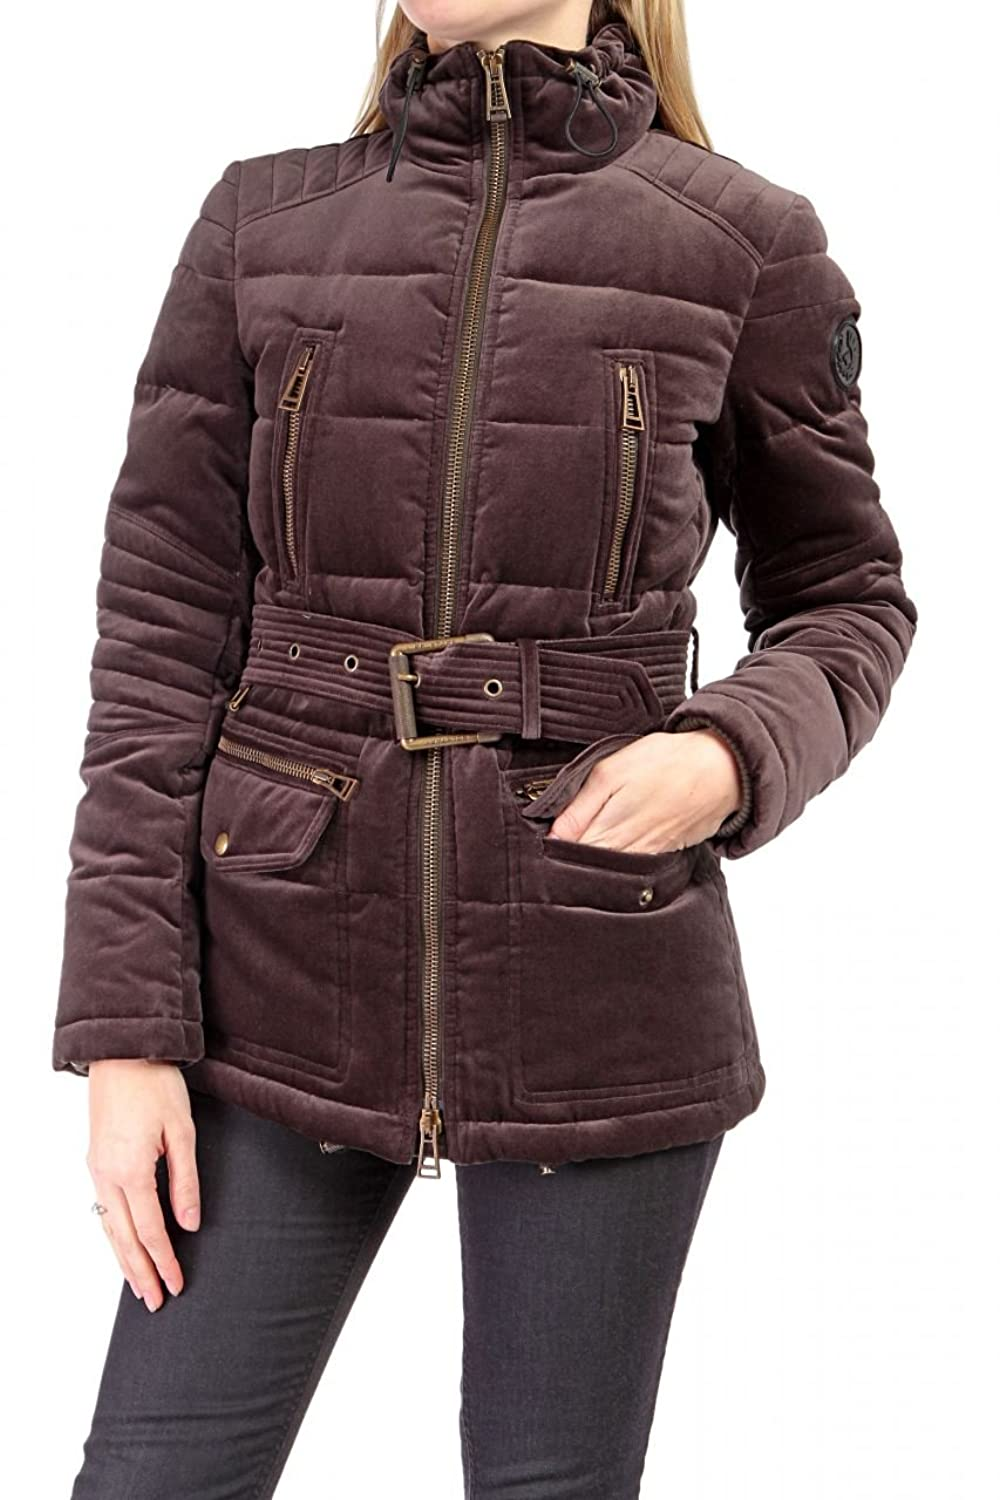 Belstaff Black Label Damen Jacke BARRETT CHANNEL QUILTED PIUMINO, Farbe: Braun